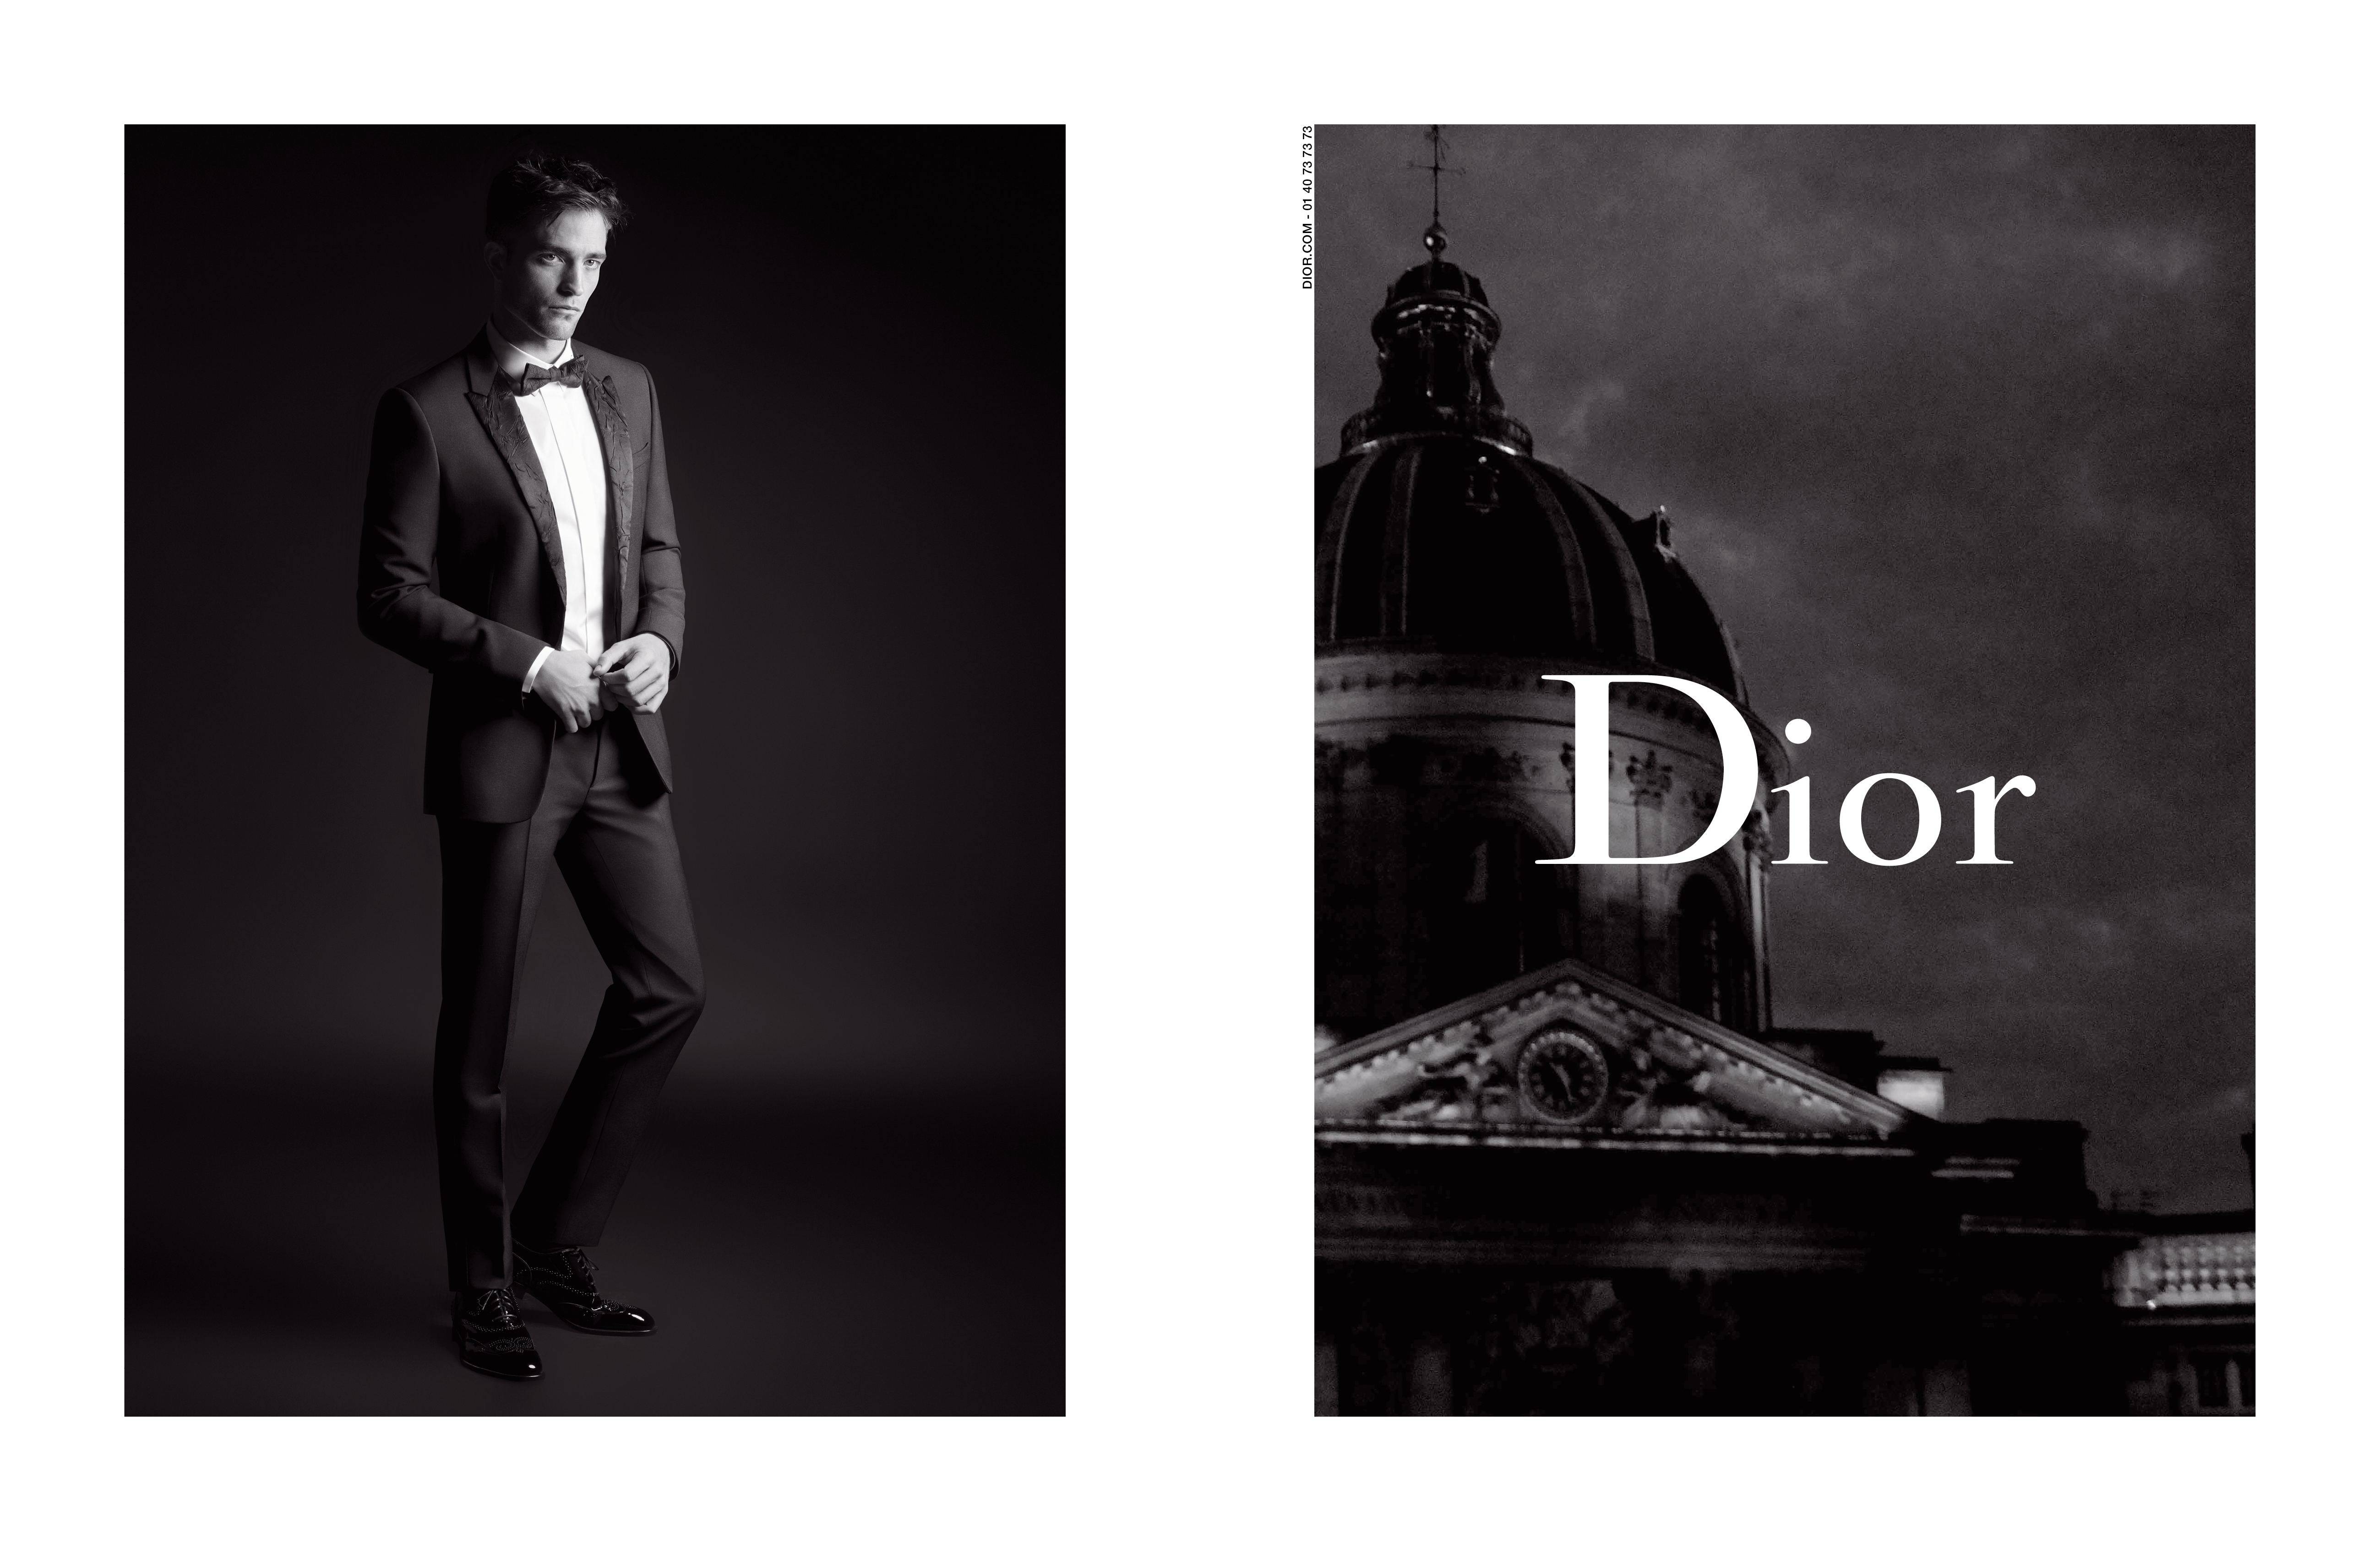 Robert Pattinson in the Dior Homme campaign.